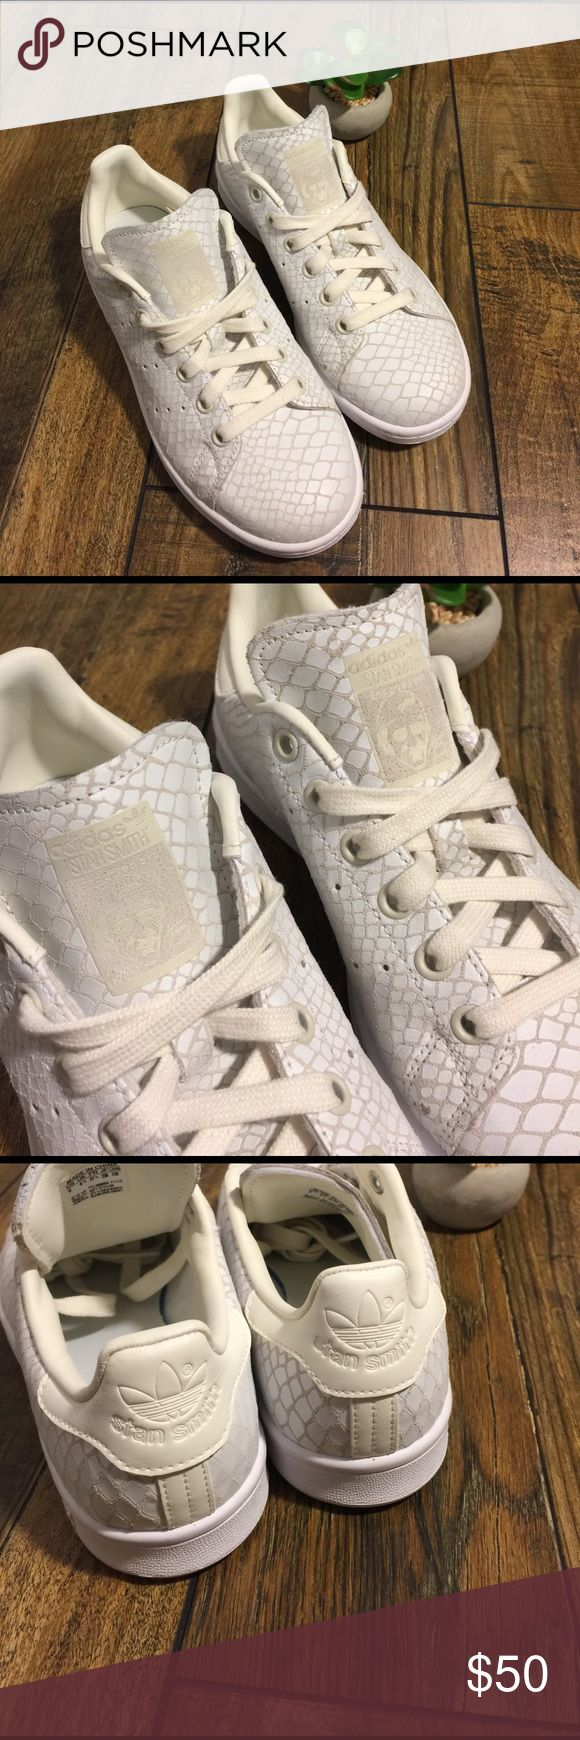 Adidas Stan Smith Sneakers NEW with no tags ~ Never worn ~ White leather snake skin pattern ~ Size 6 Ladies ~ Adidas Shoes Sneakers